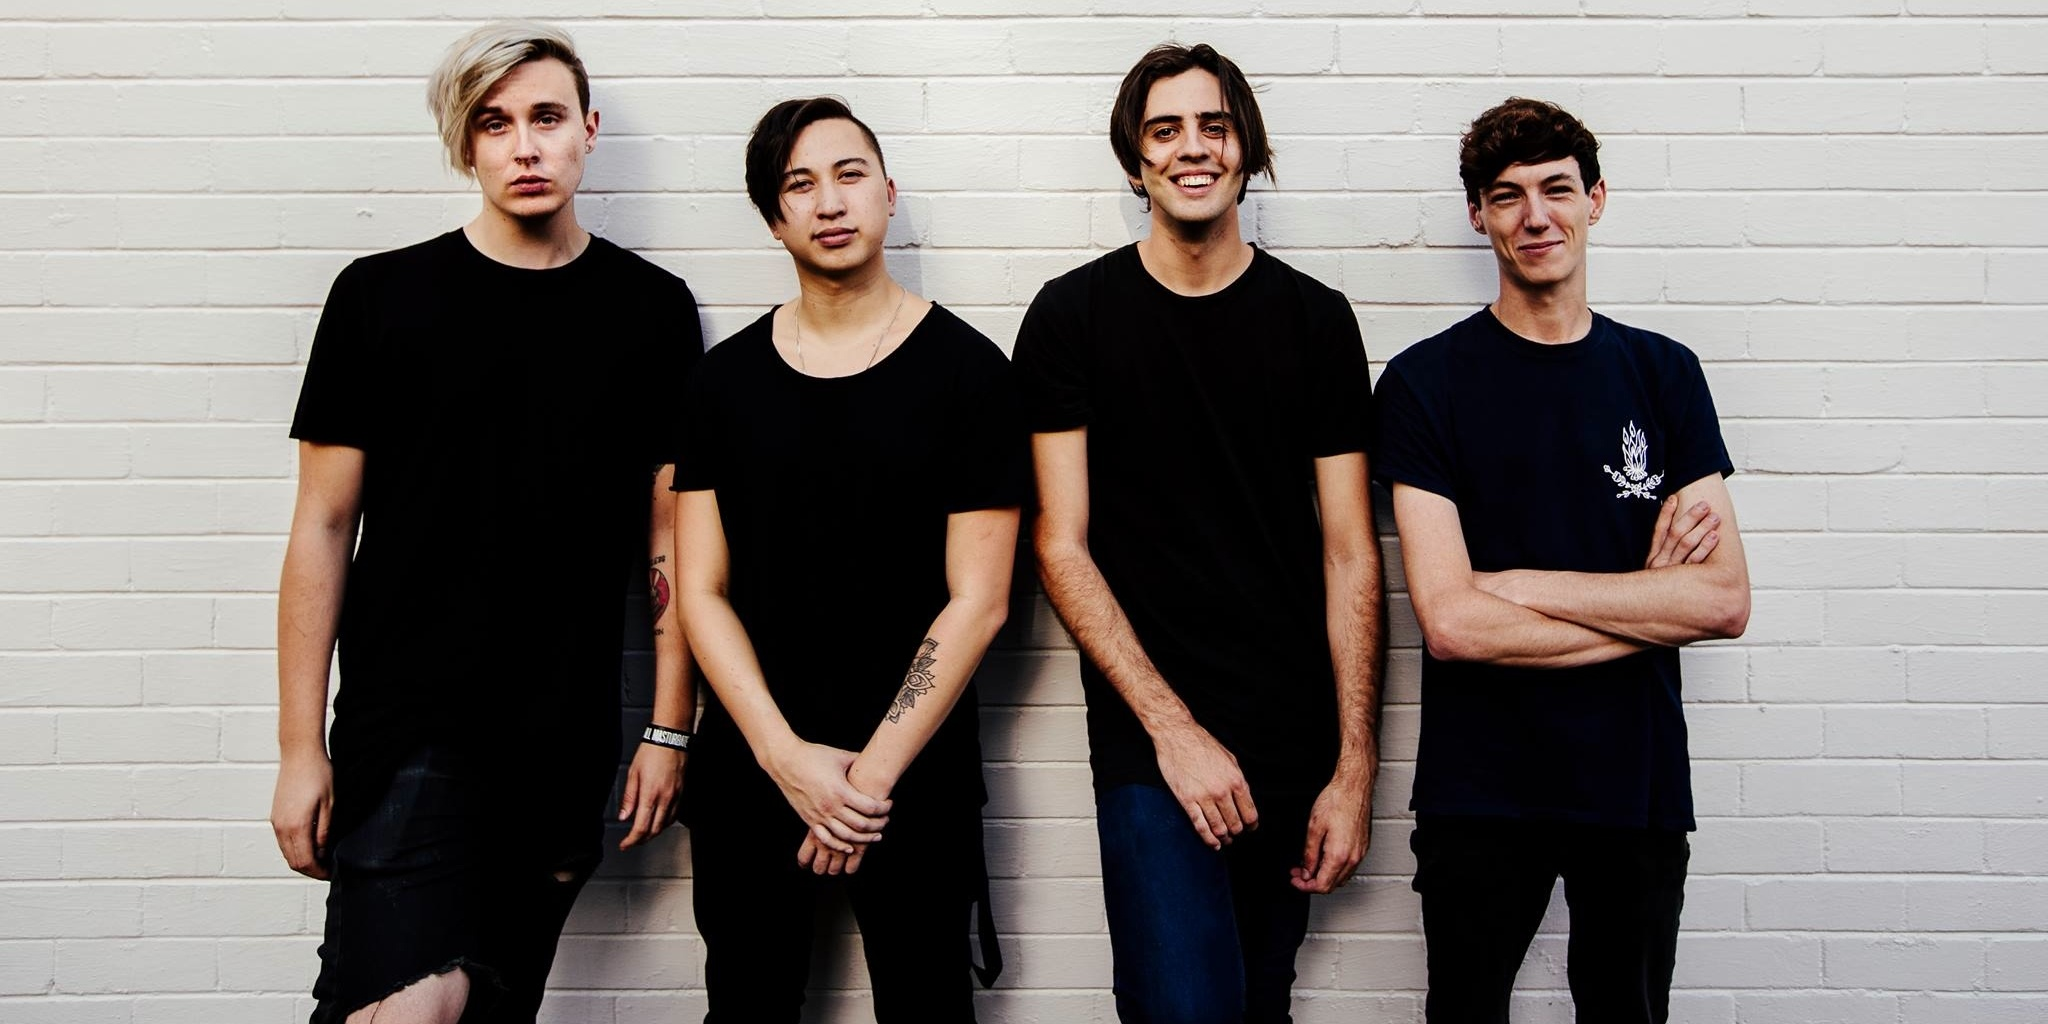 PULP Live World brings Australian pop punk band With Confidence to SM Malls